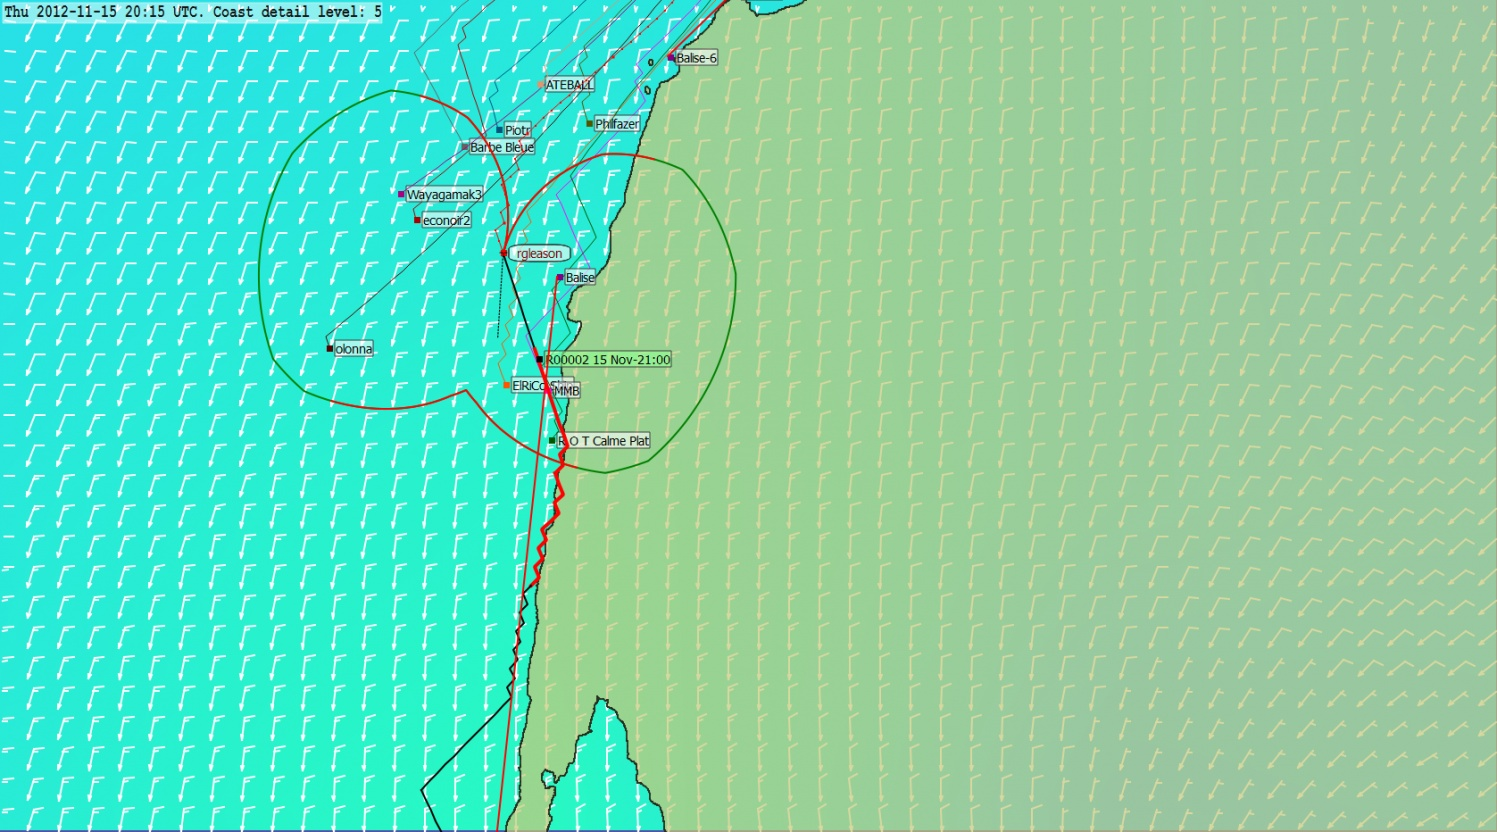 Click image for larger version  Name:Vendee-Routing-HitsLand.jpg Views:47 Size:412.6 KB ID:49755